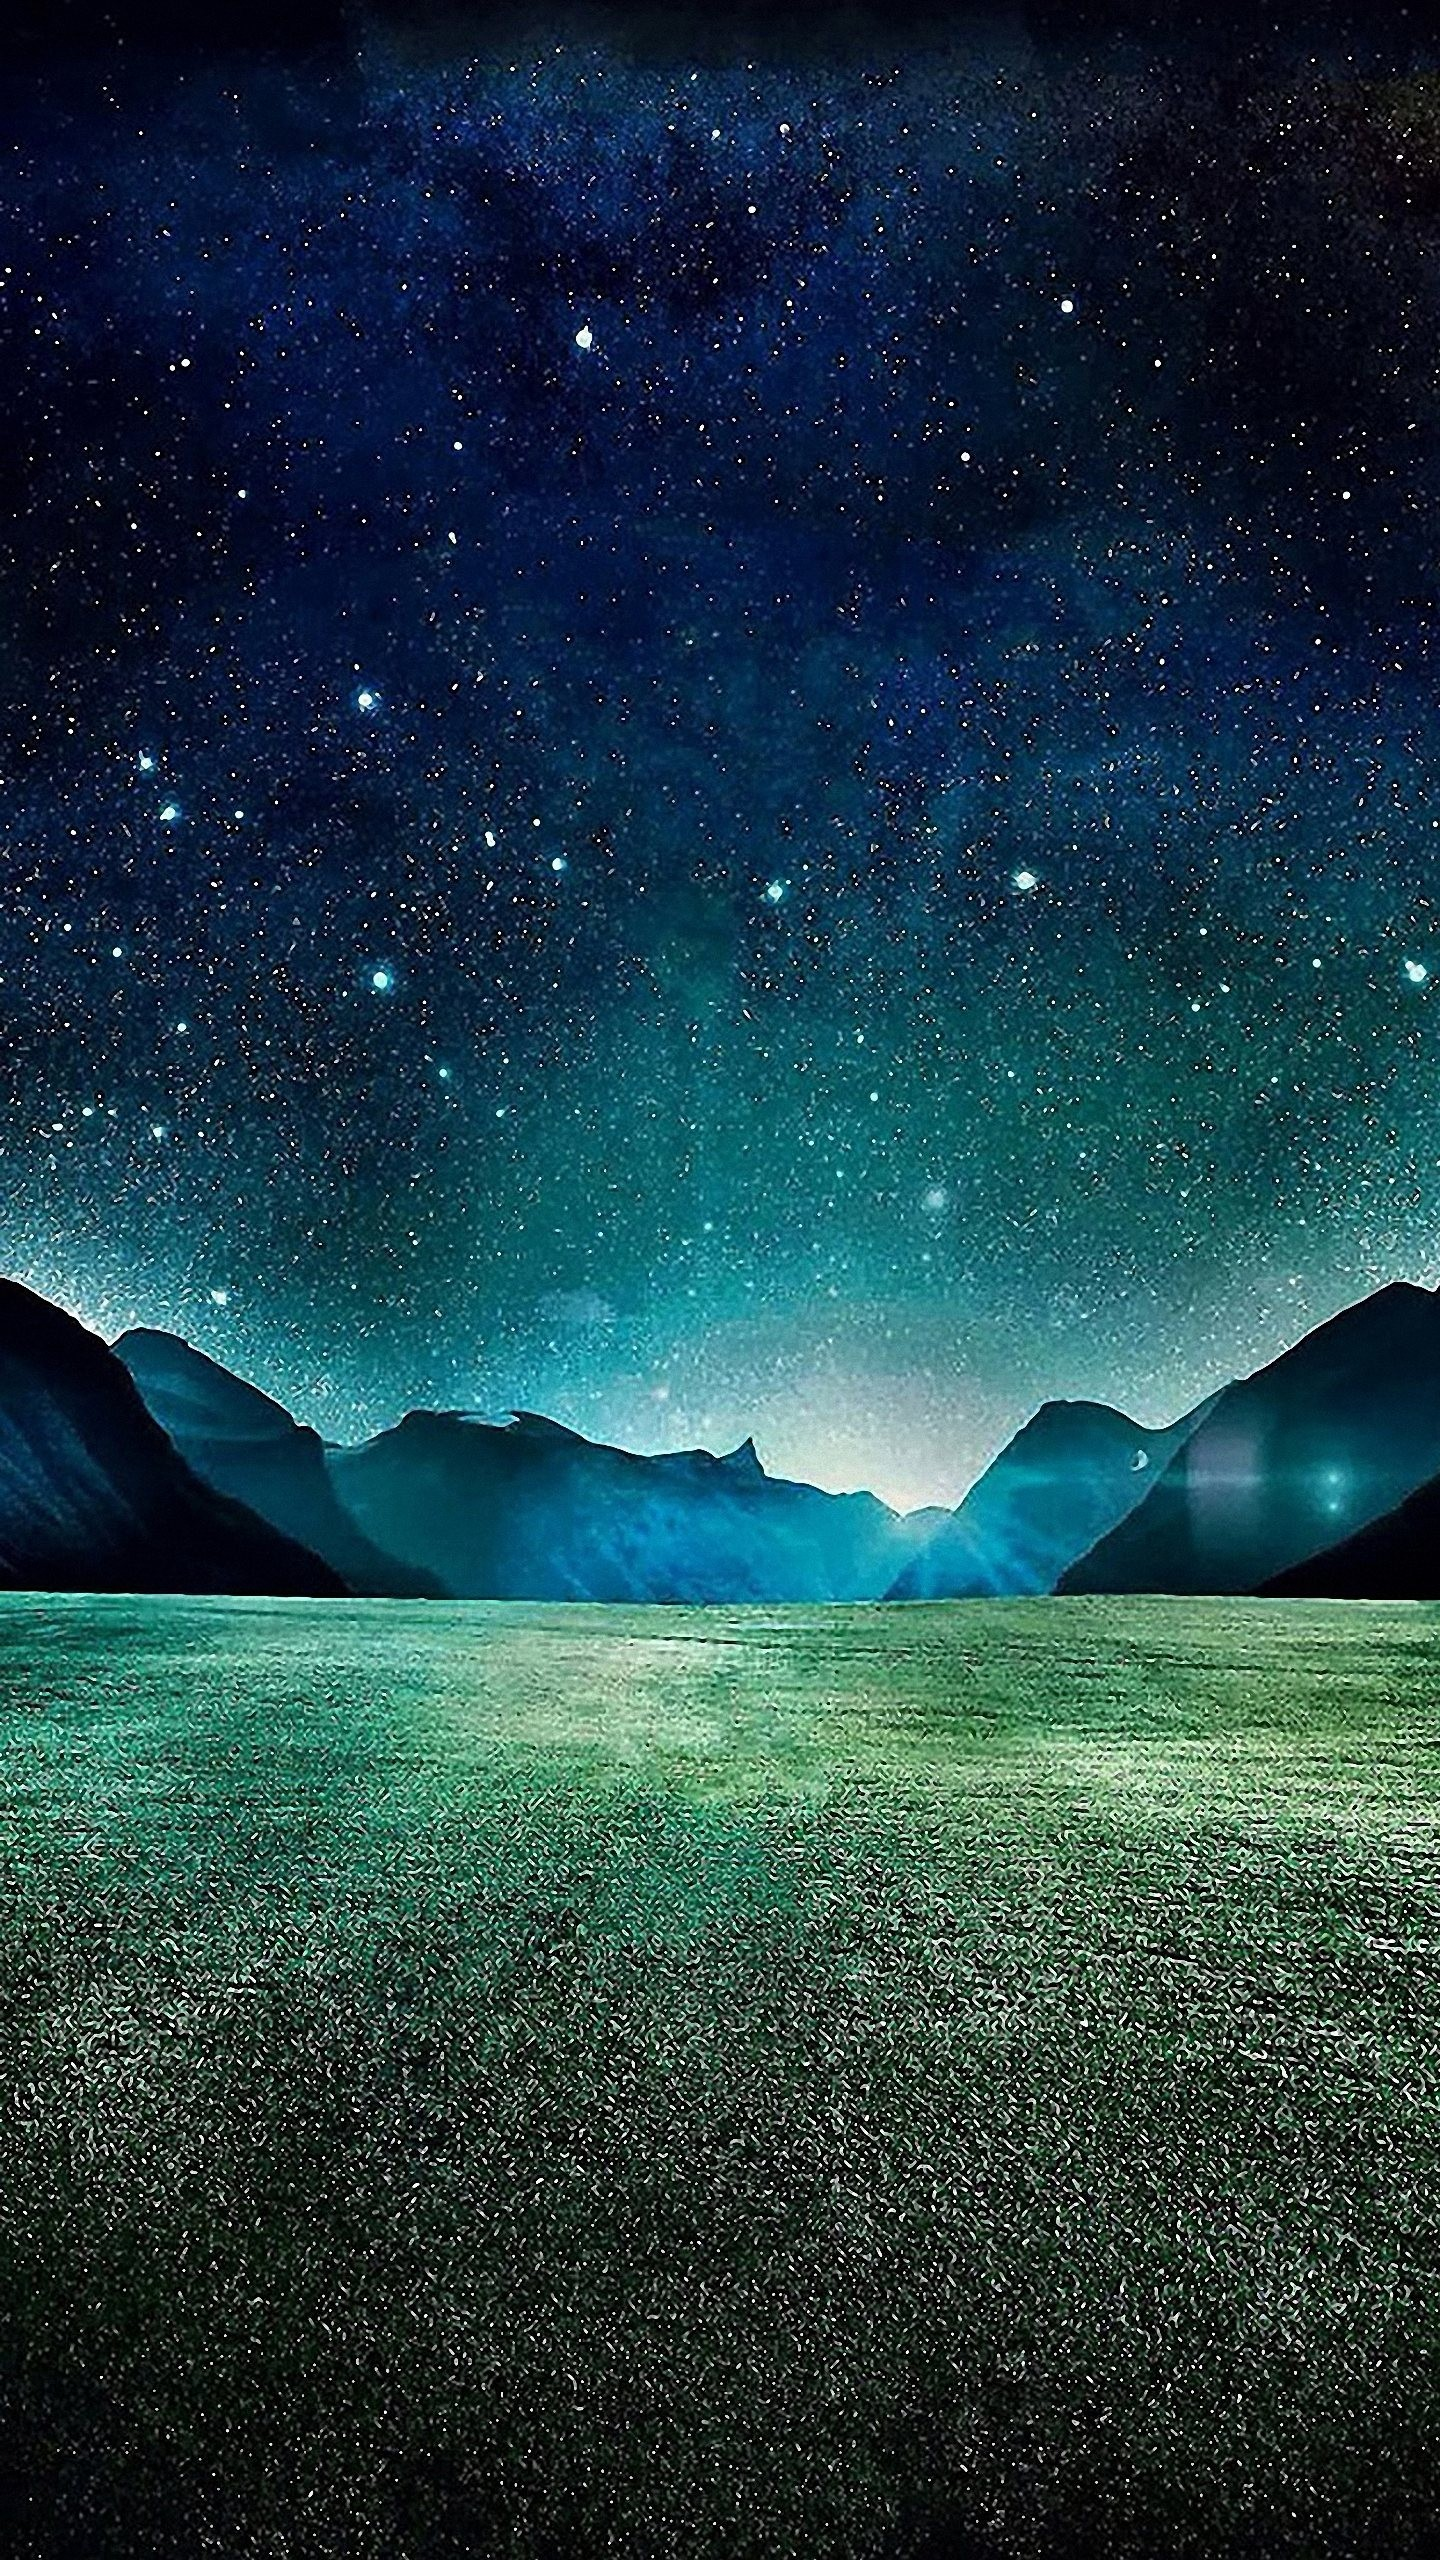 Fantastic Wallpaper Night Galaxy - the-space-from-earth-wallpaper-background-1440x2560  You Should Have-644935.jpg